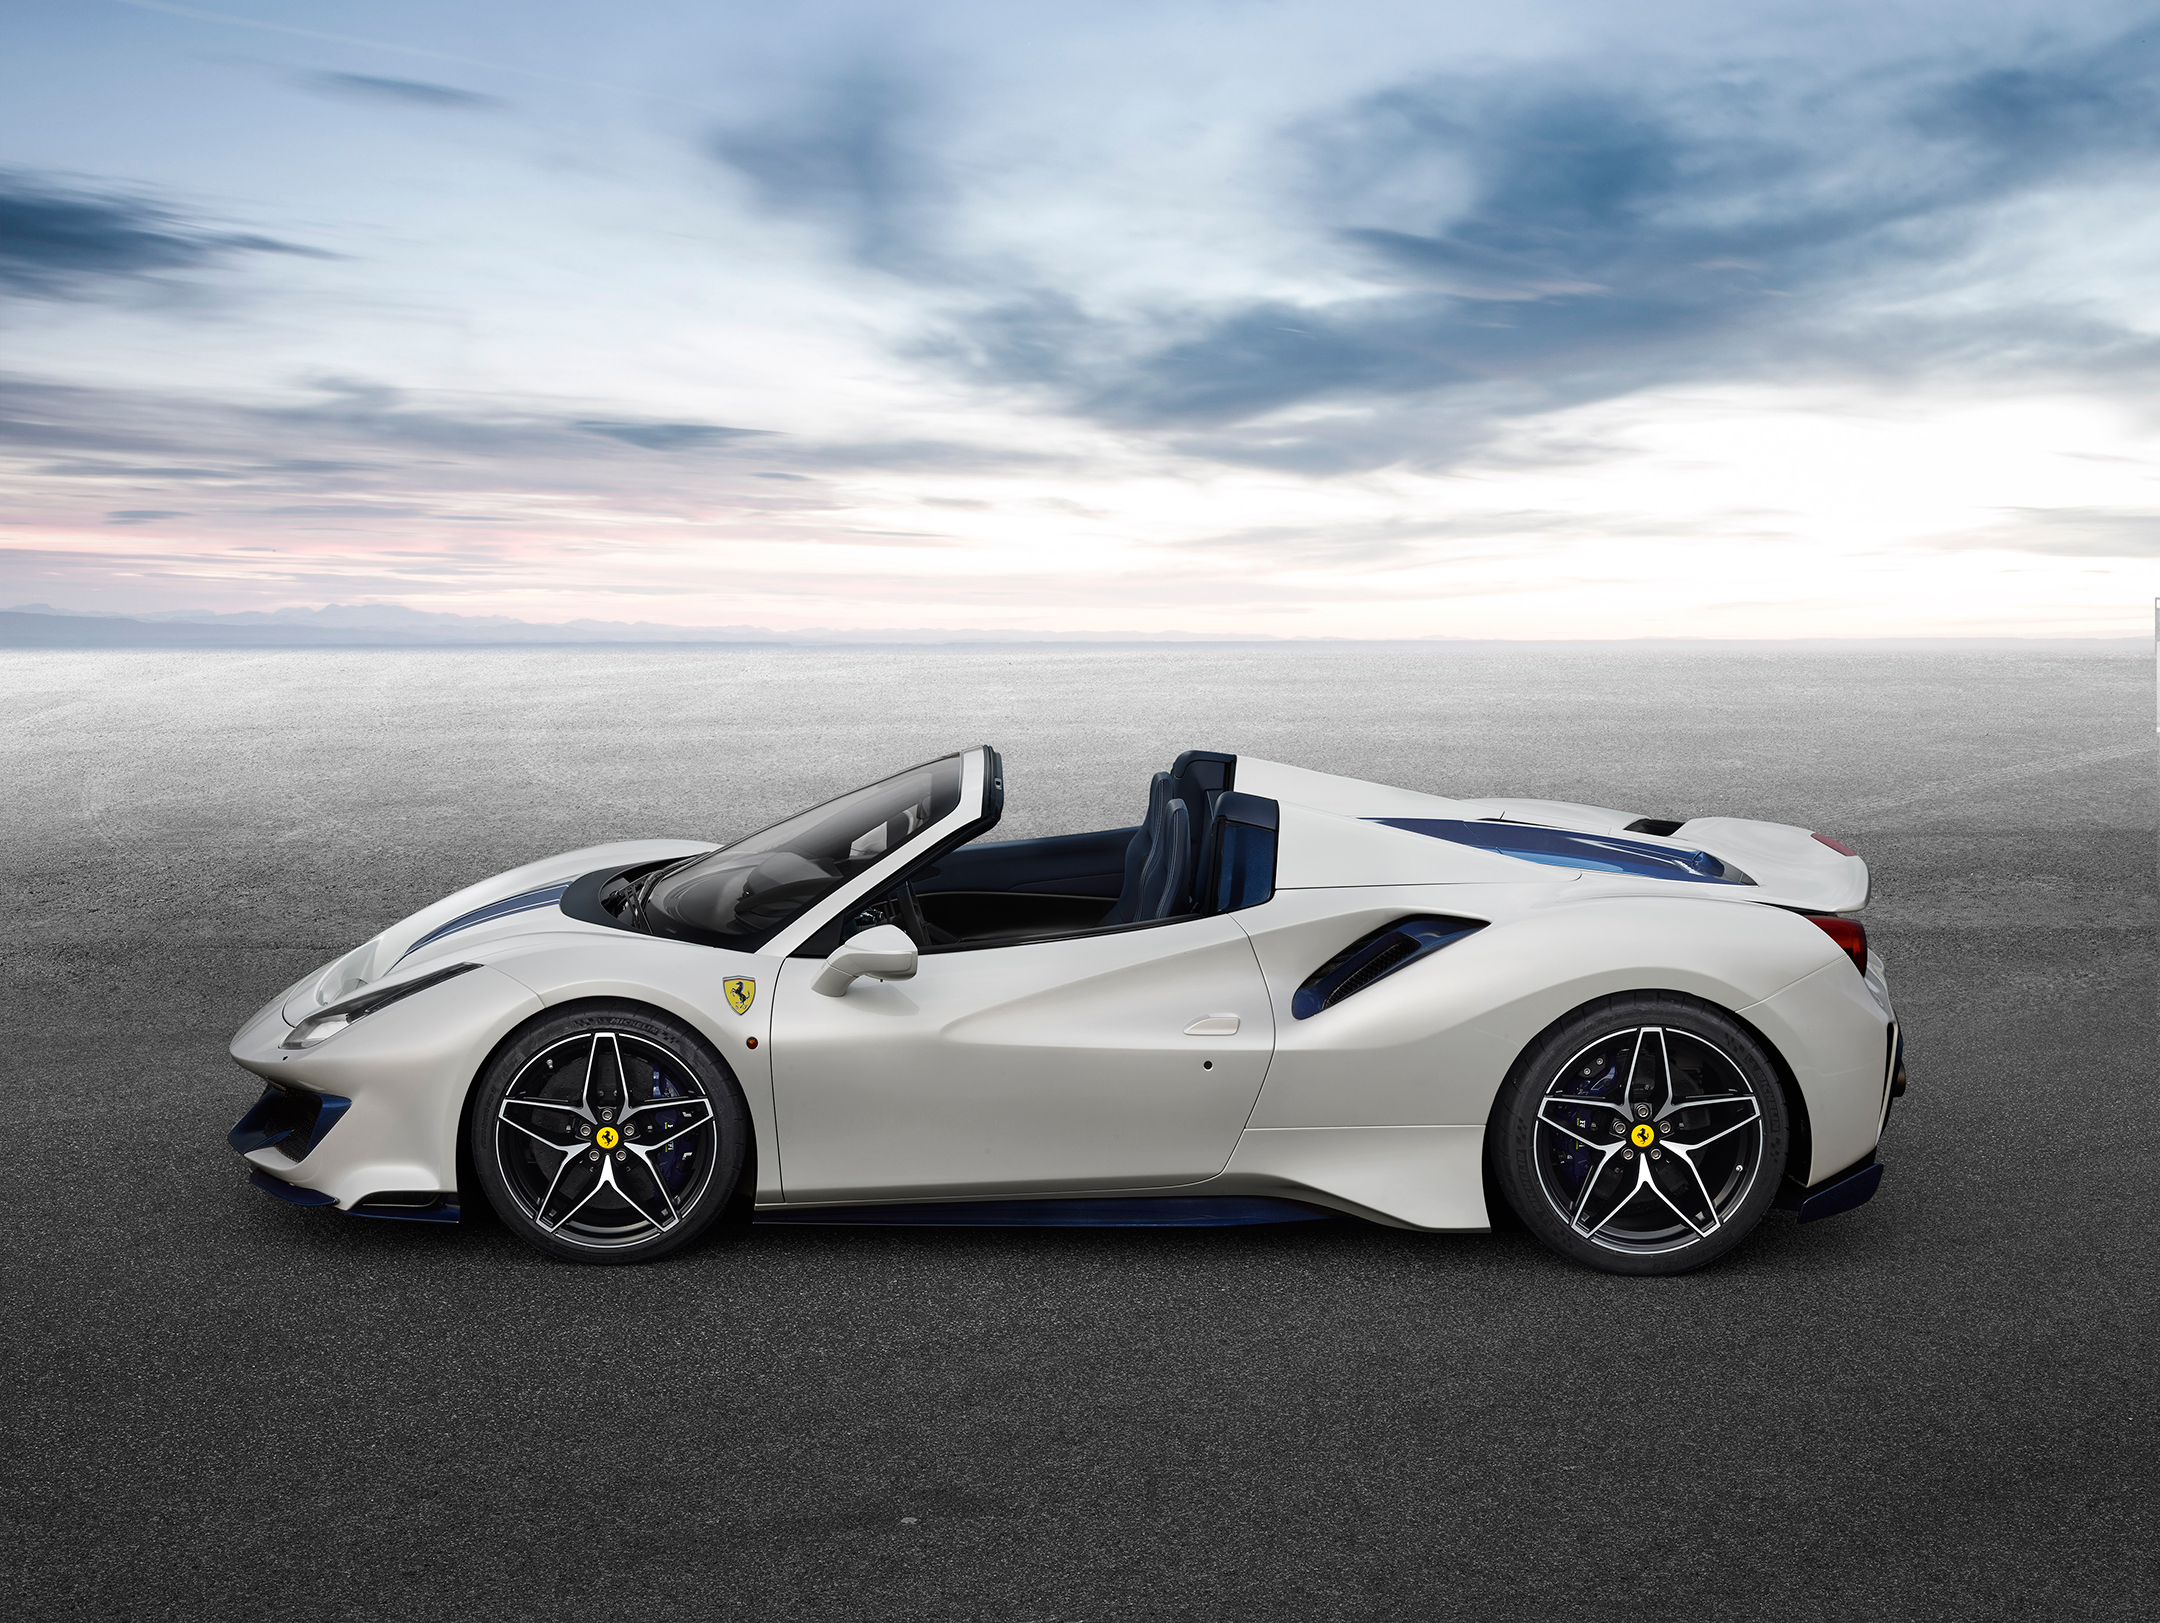 Ferrari 488 Pista Spider - 2018 - side-face / profil - open top / toit ouvert